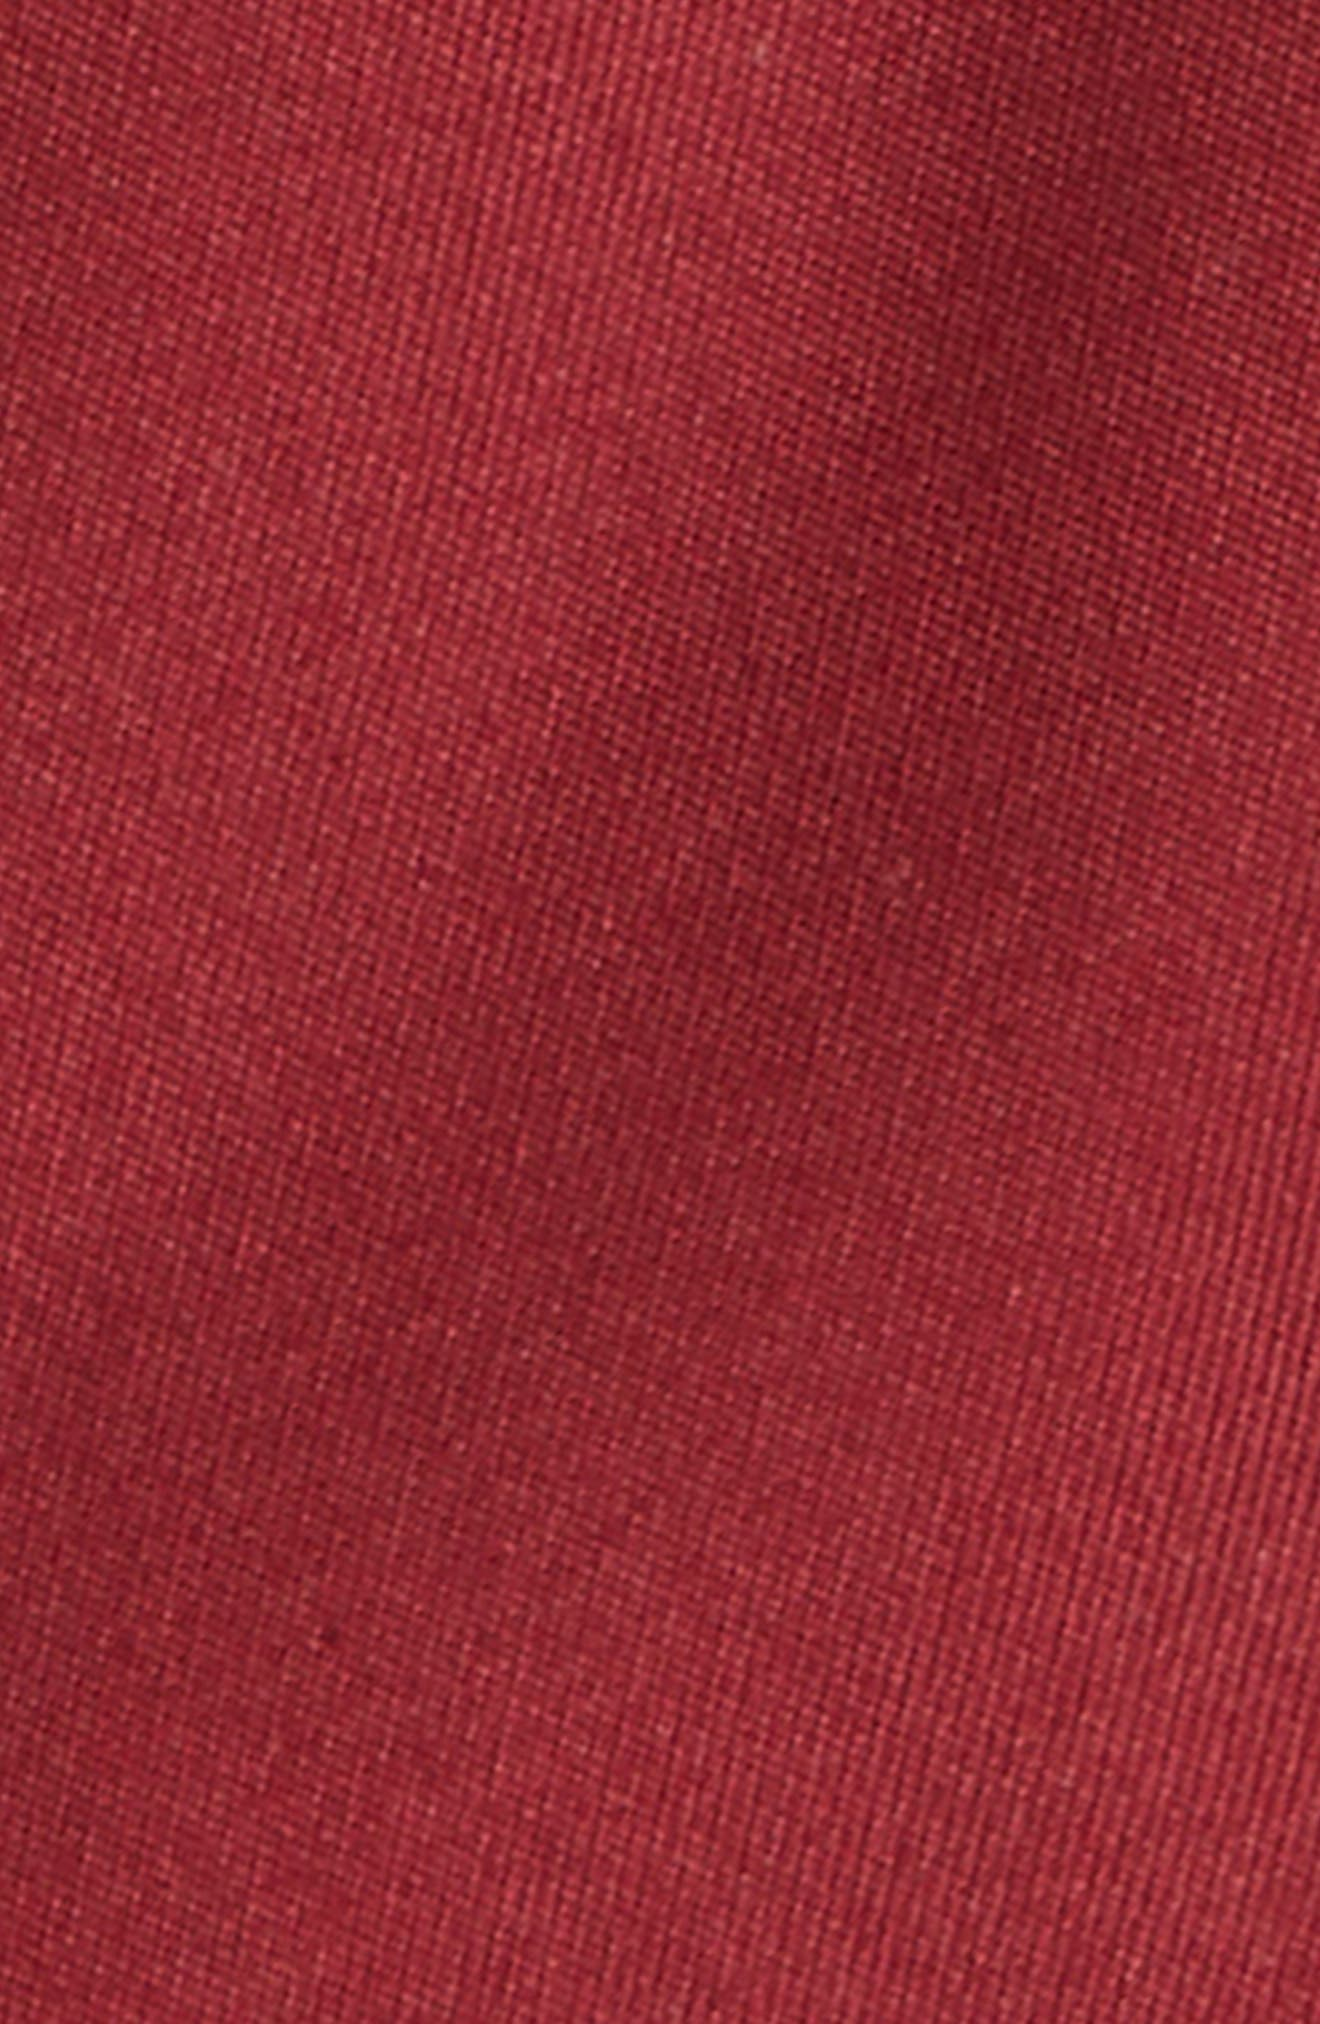 Matte Satin Silk Tie,                             Alternate thumbnail 2, color,                             BURGUNDY